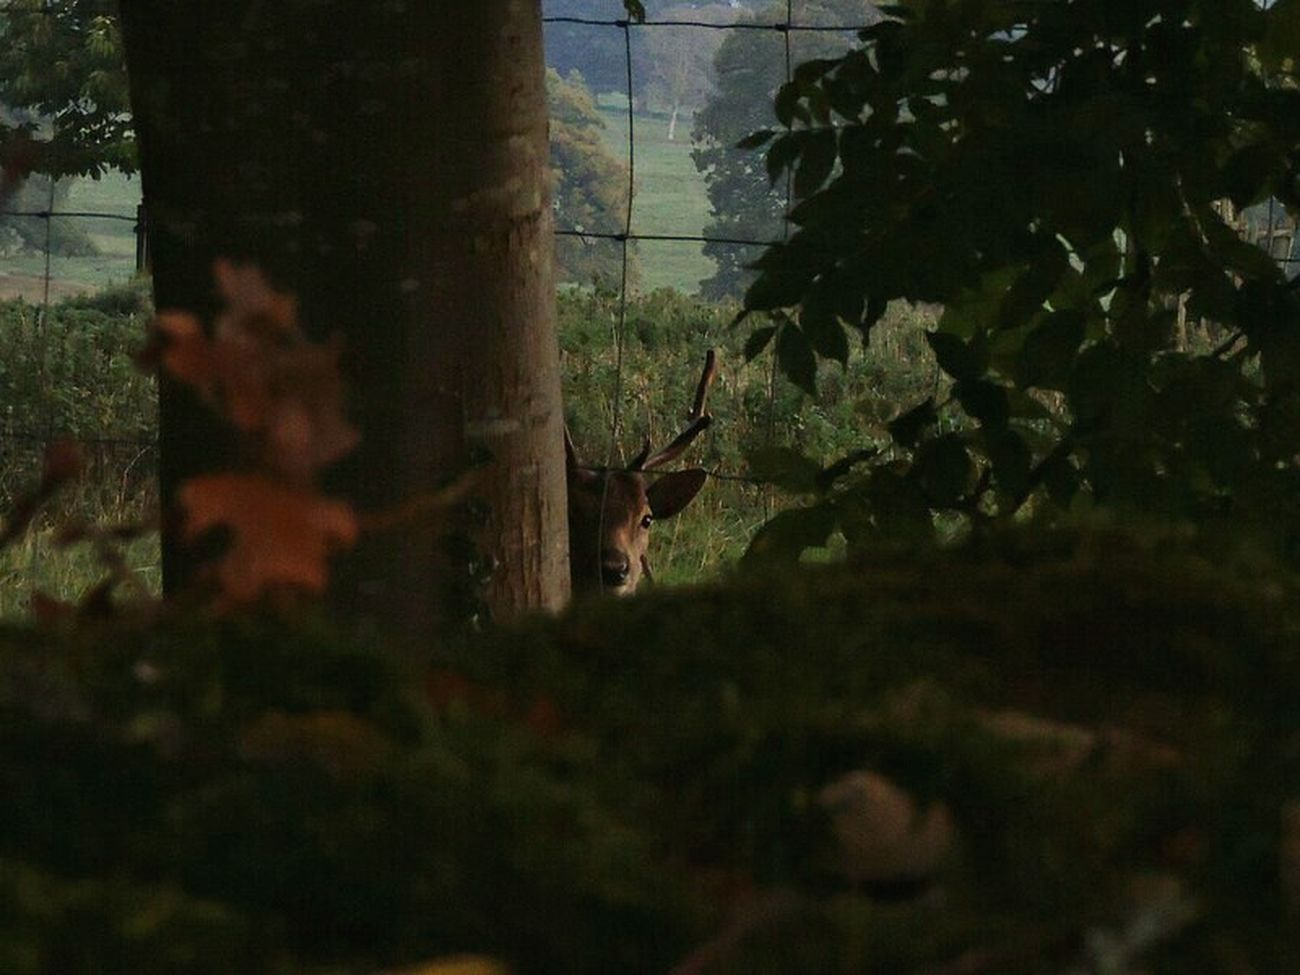 Taking Photos Check This Out Autumn🍁🍁🍁 Rural Scene Through The Fence Naturephotography EyeEm Nature Lover Watching Deer Deer ♥♥ Deersighting Deerhead Fallow Deer Naturelovers Beautiful Nature Nature On Your Doorstep Enjoying Nature Wildlife & Nature